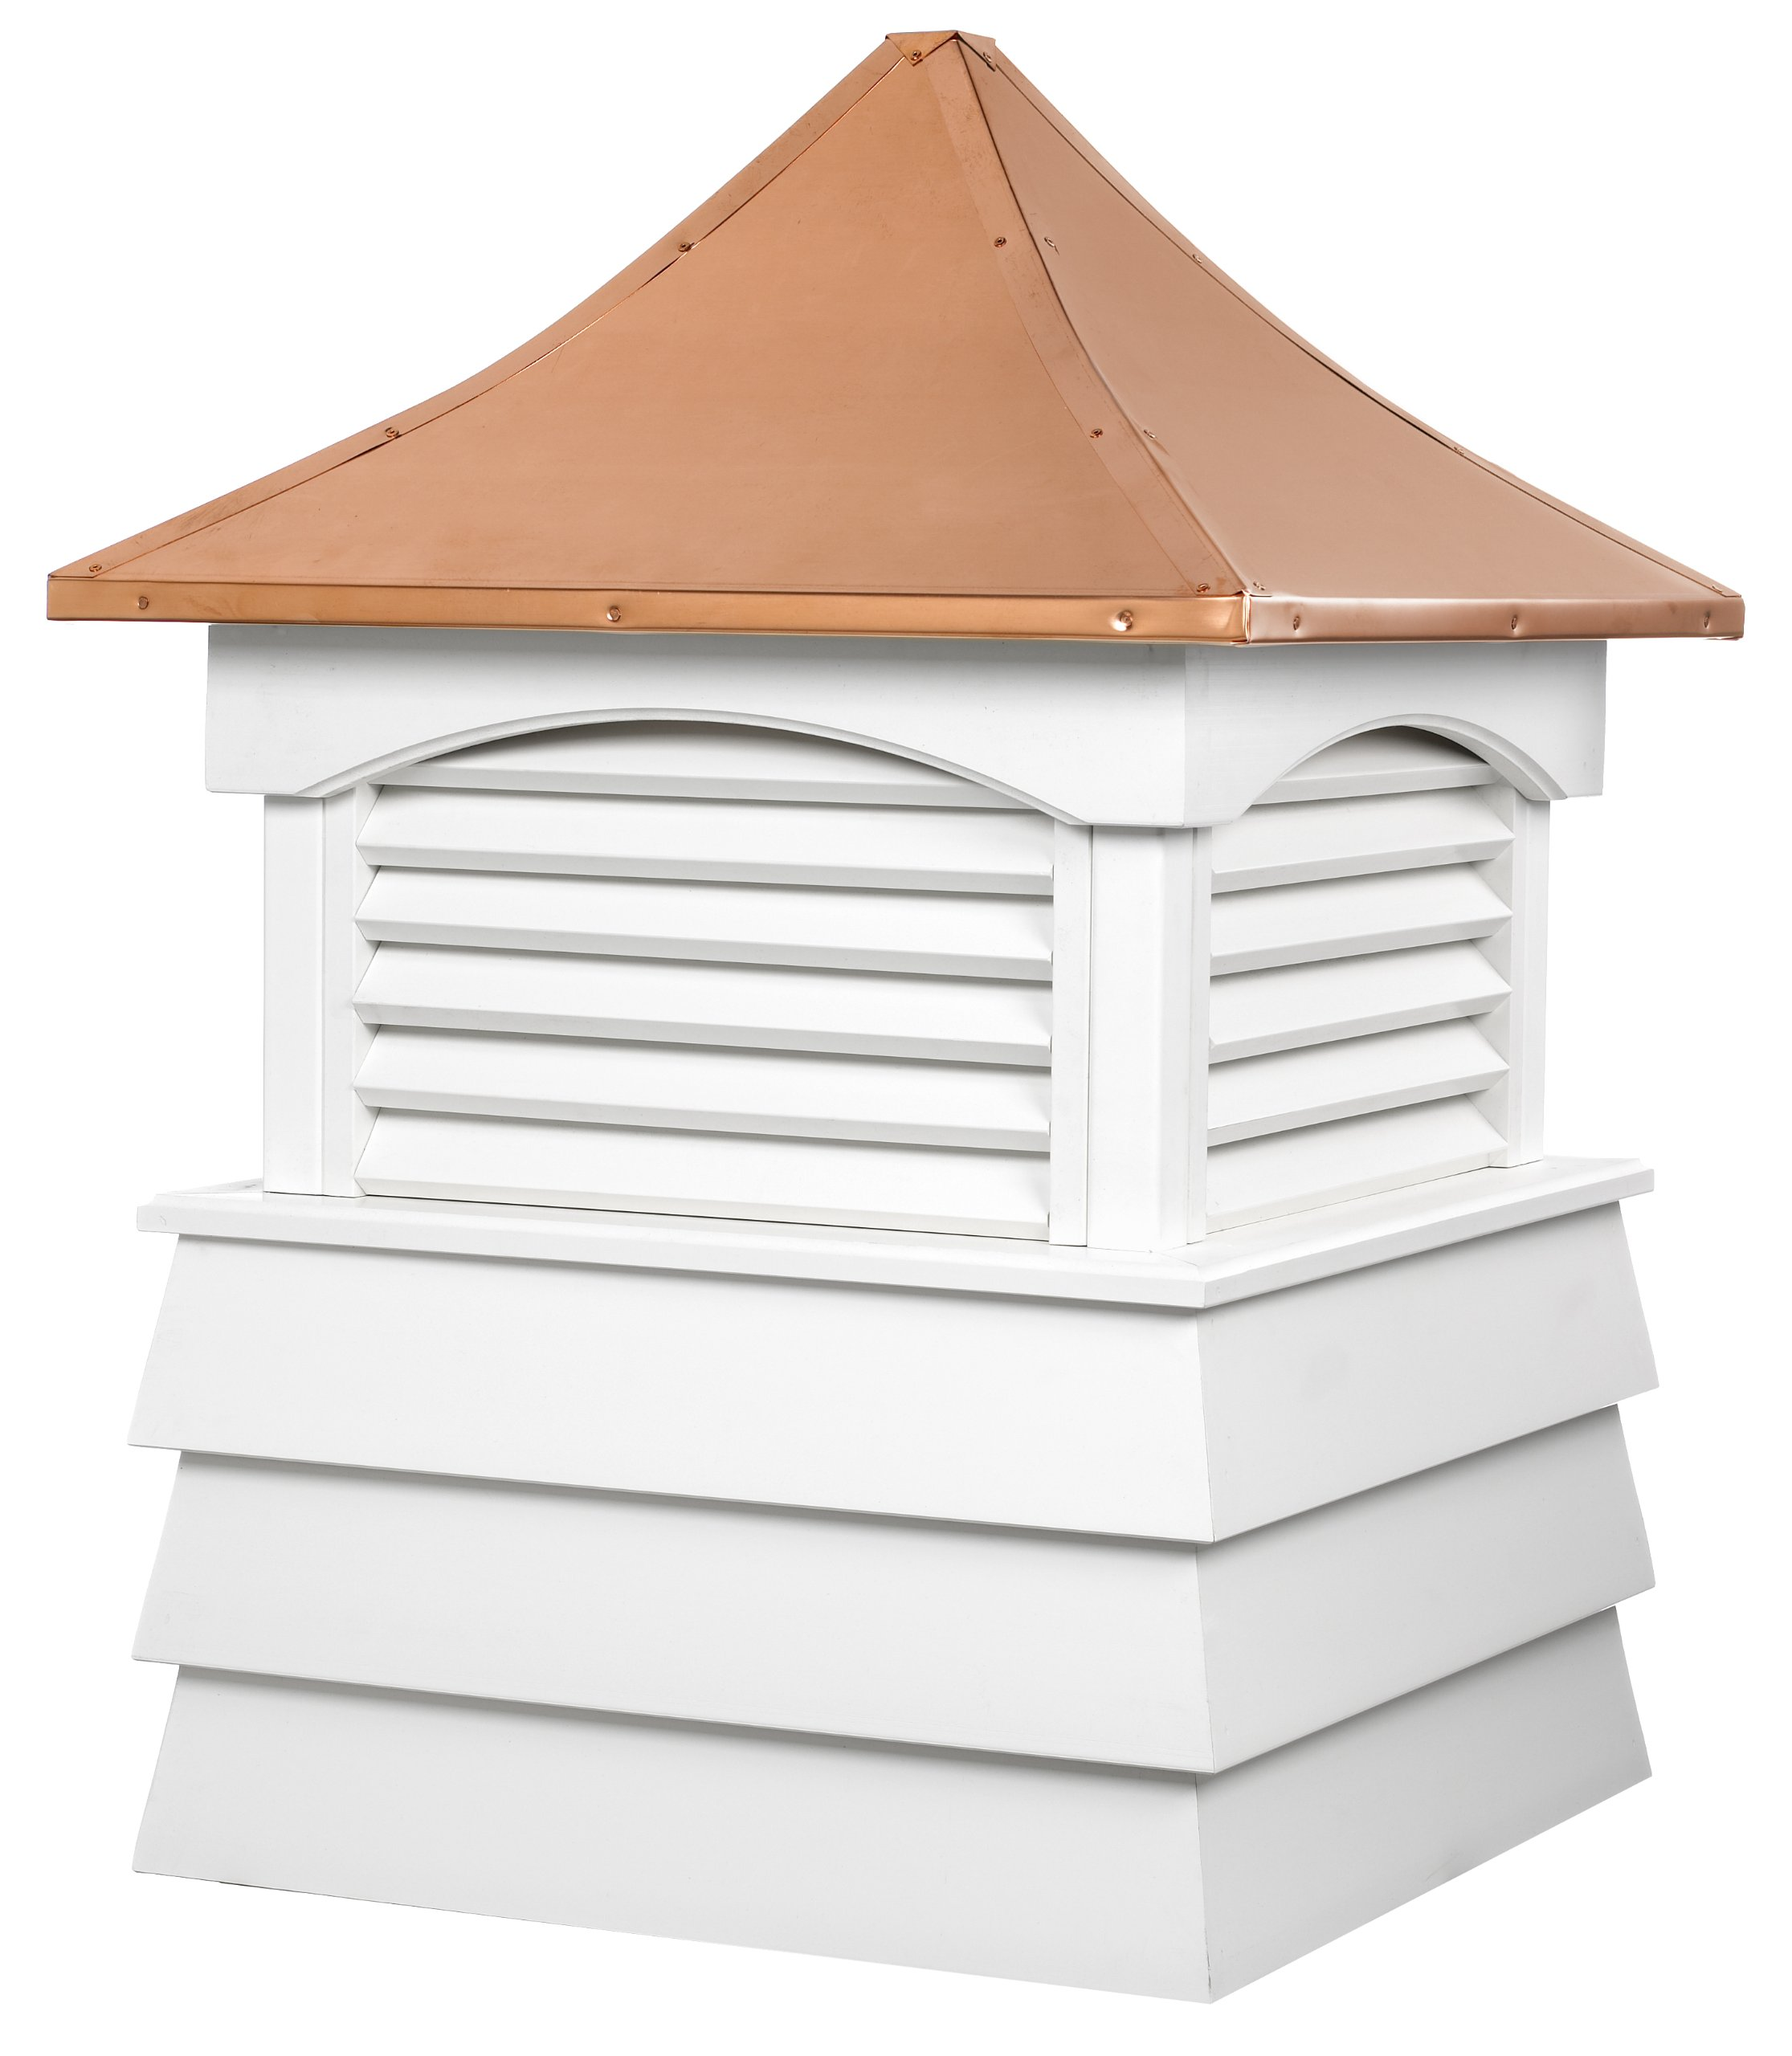 Good Directions Sherwood Vinyl Shiplap Cupola with Copper Roof 84'' x 107''